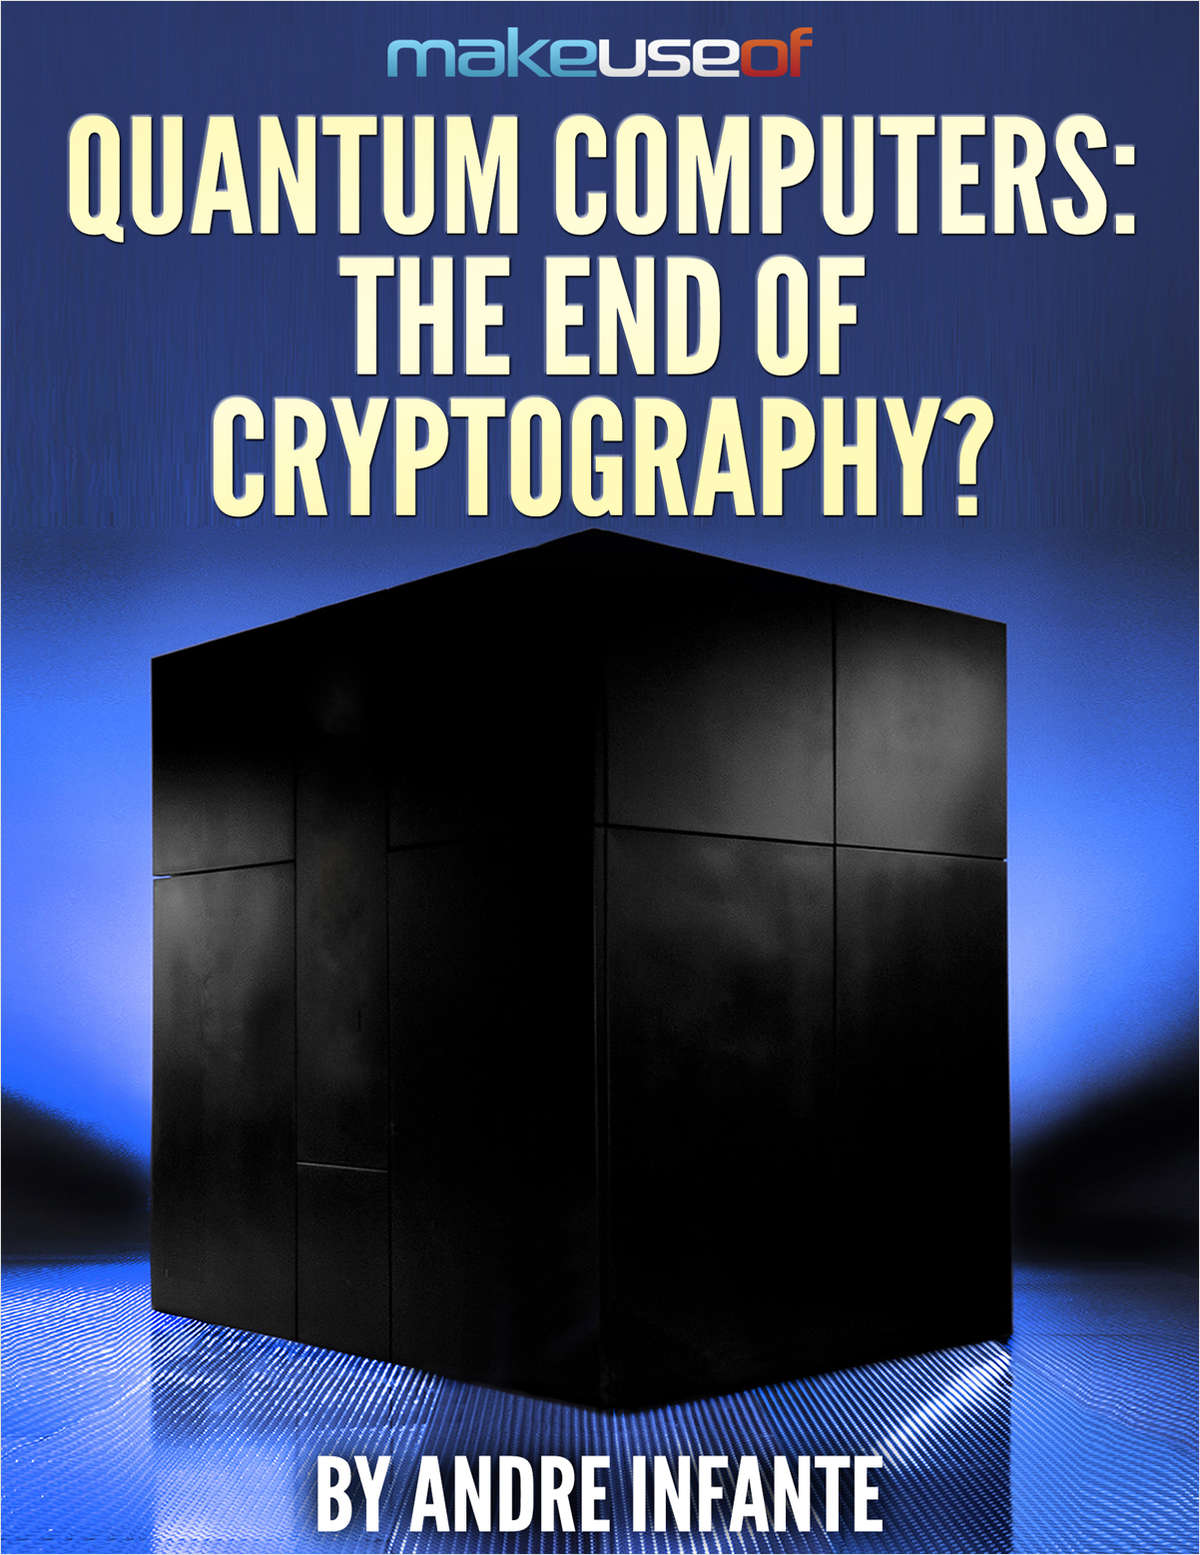 Quantum Computers: The End of Cryptography?